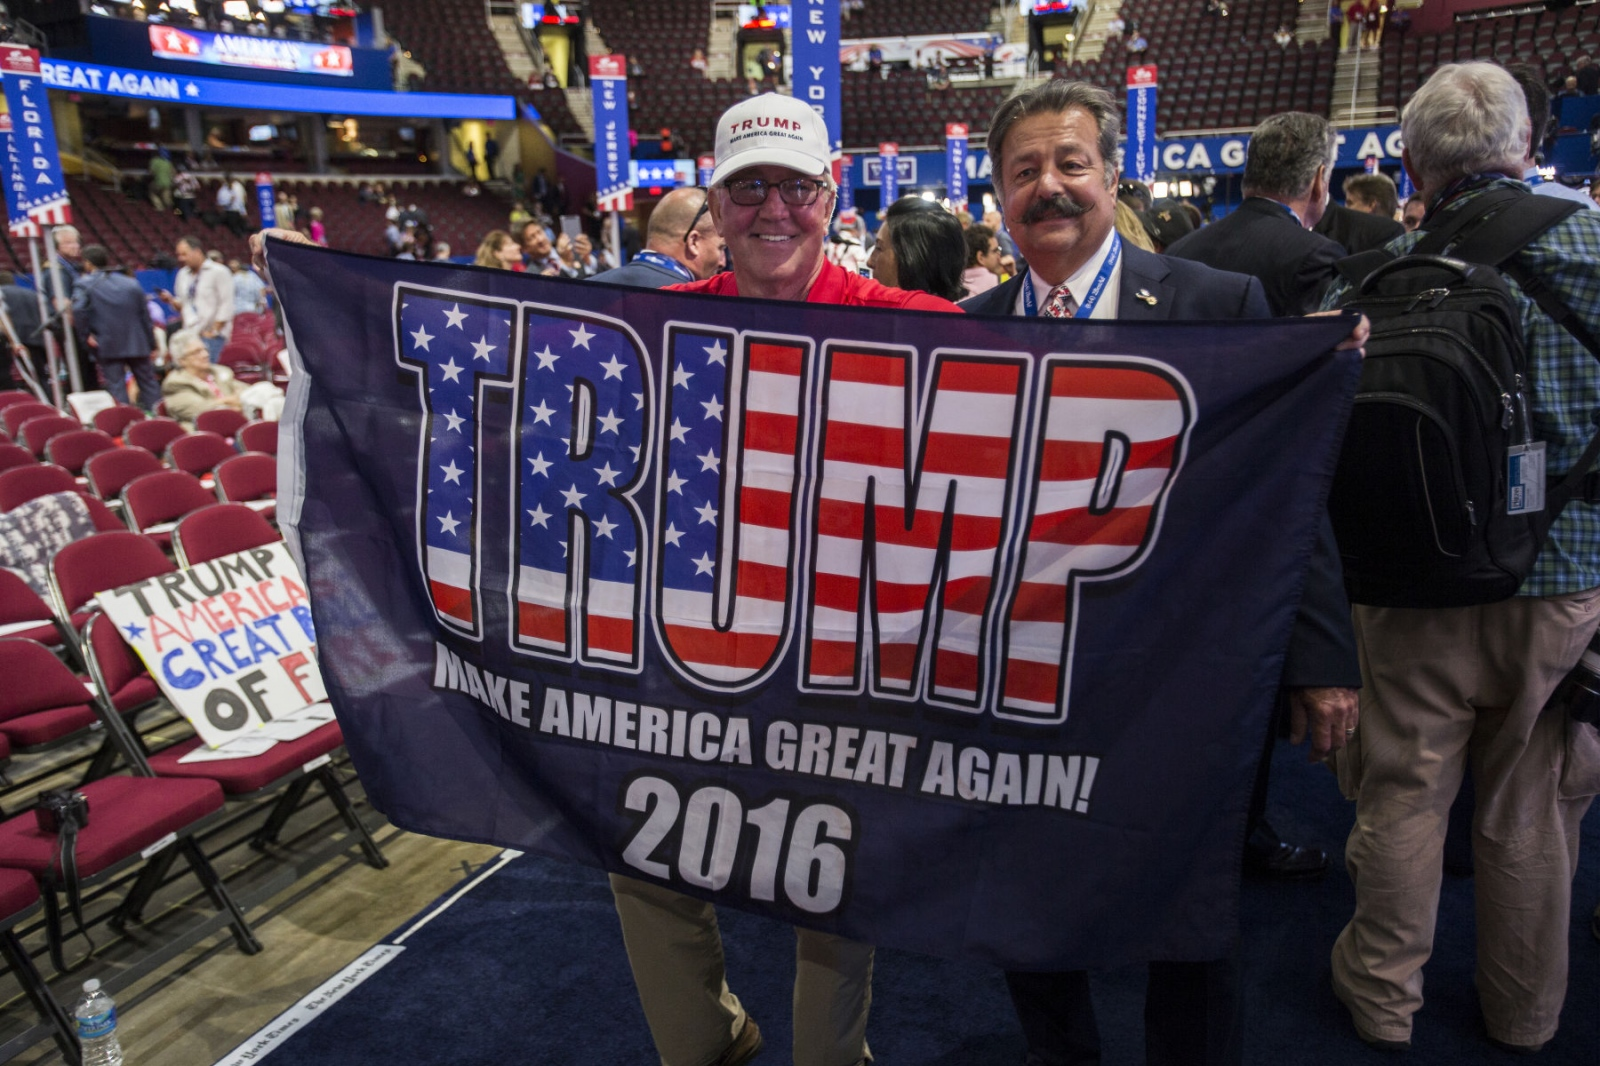 Trump supporters at the Republican National Convention in Cleveland, Ohio. July 21, 2016